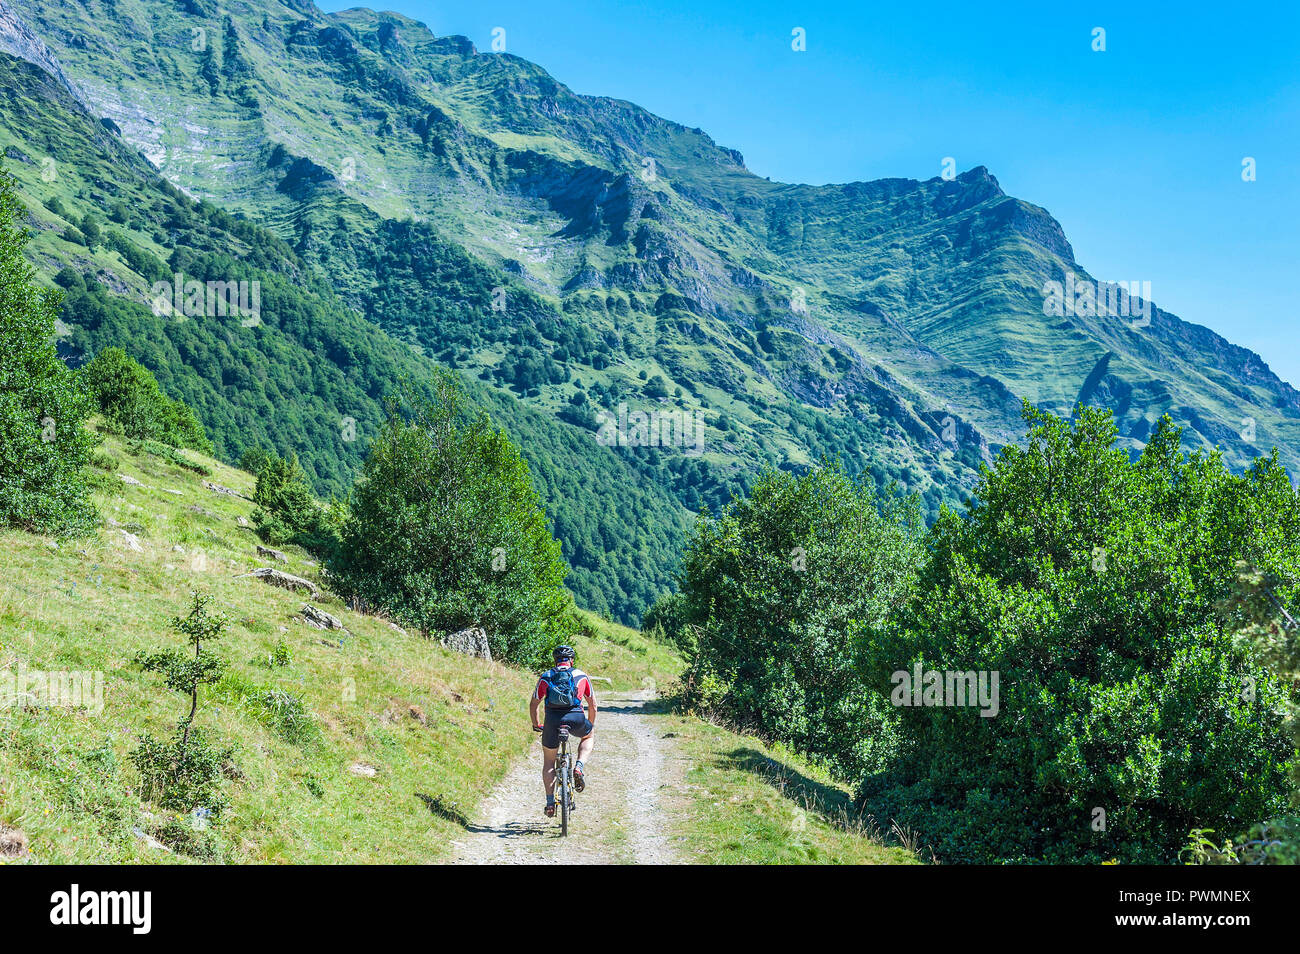 France, Pyrenees National Park, Occitanie region, Val d'Azun, Haute-vallee d'Estaing, cyclist, mountain bike on a track Stock Photo